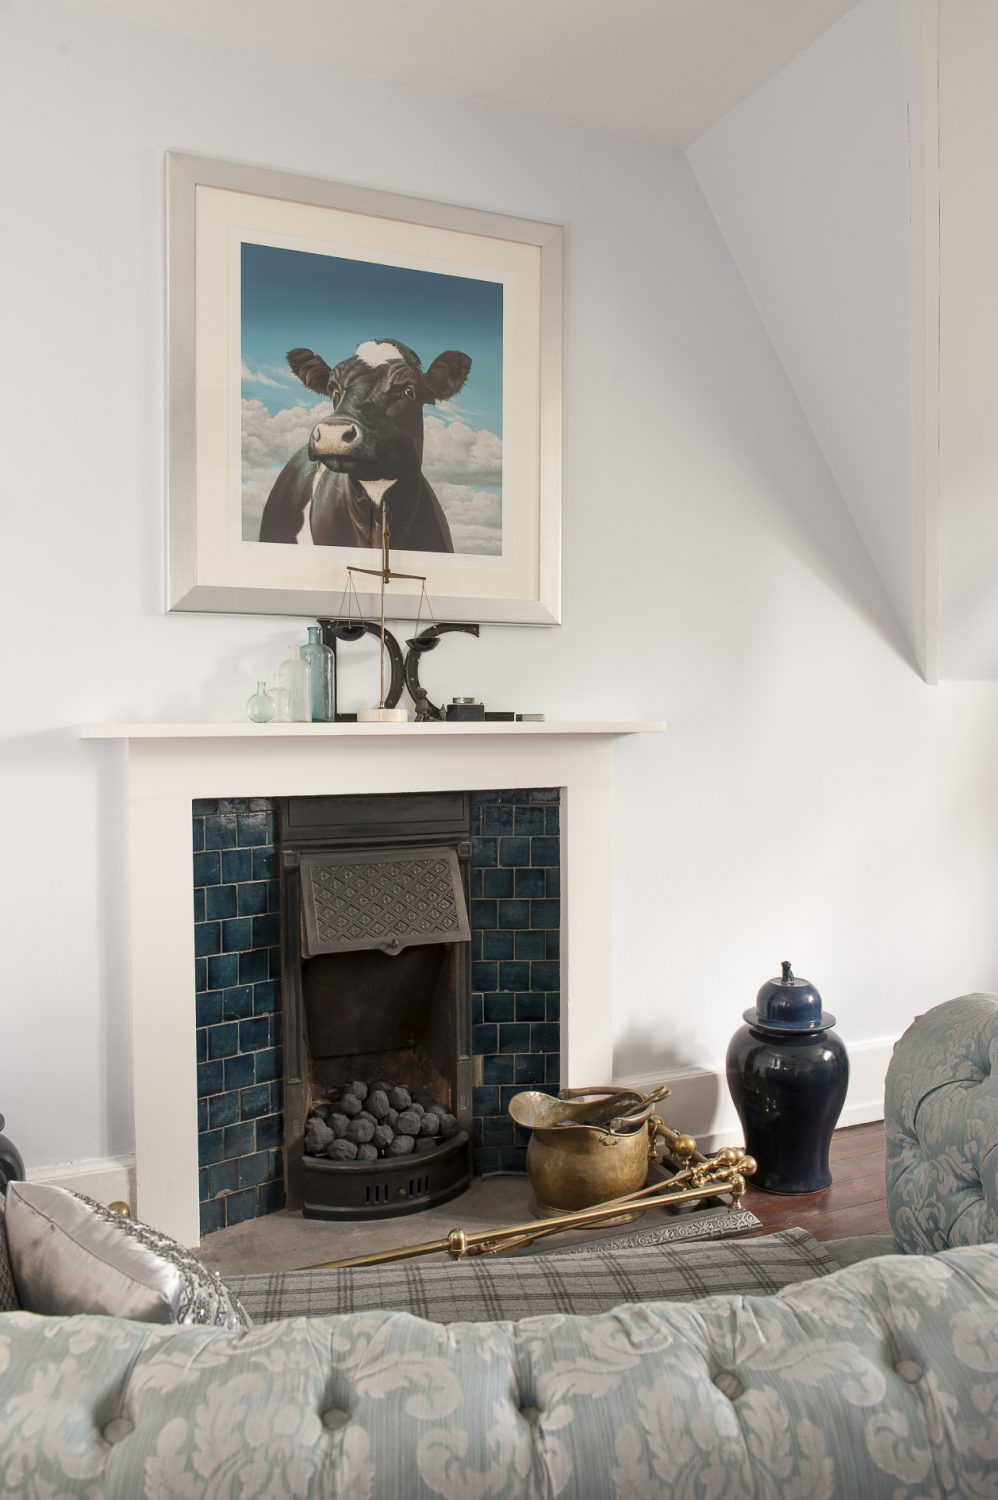 A Paul James cow painting (called Camilla) hangs above the chimneypiece